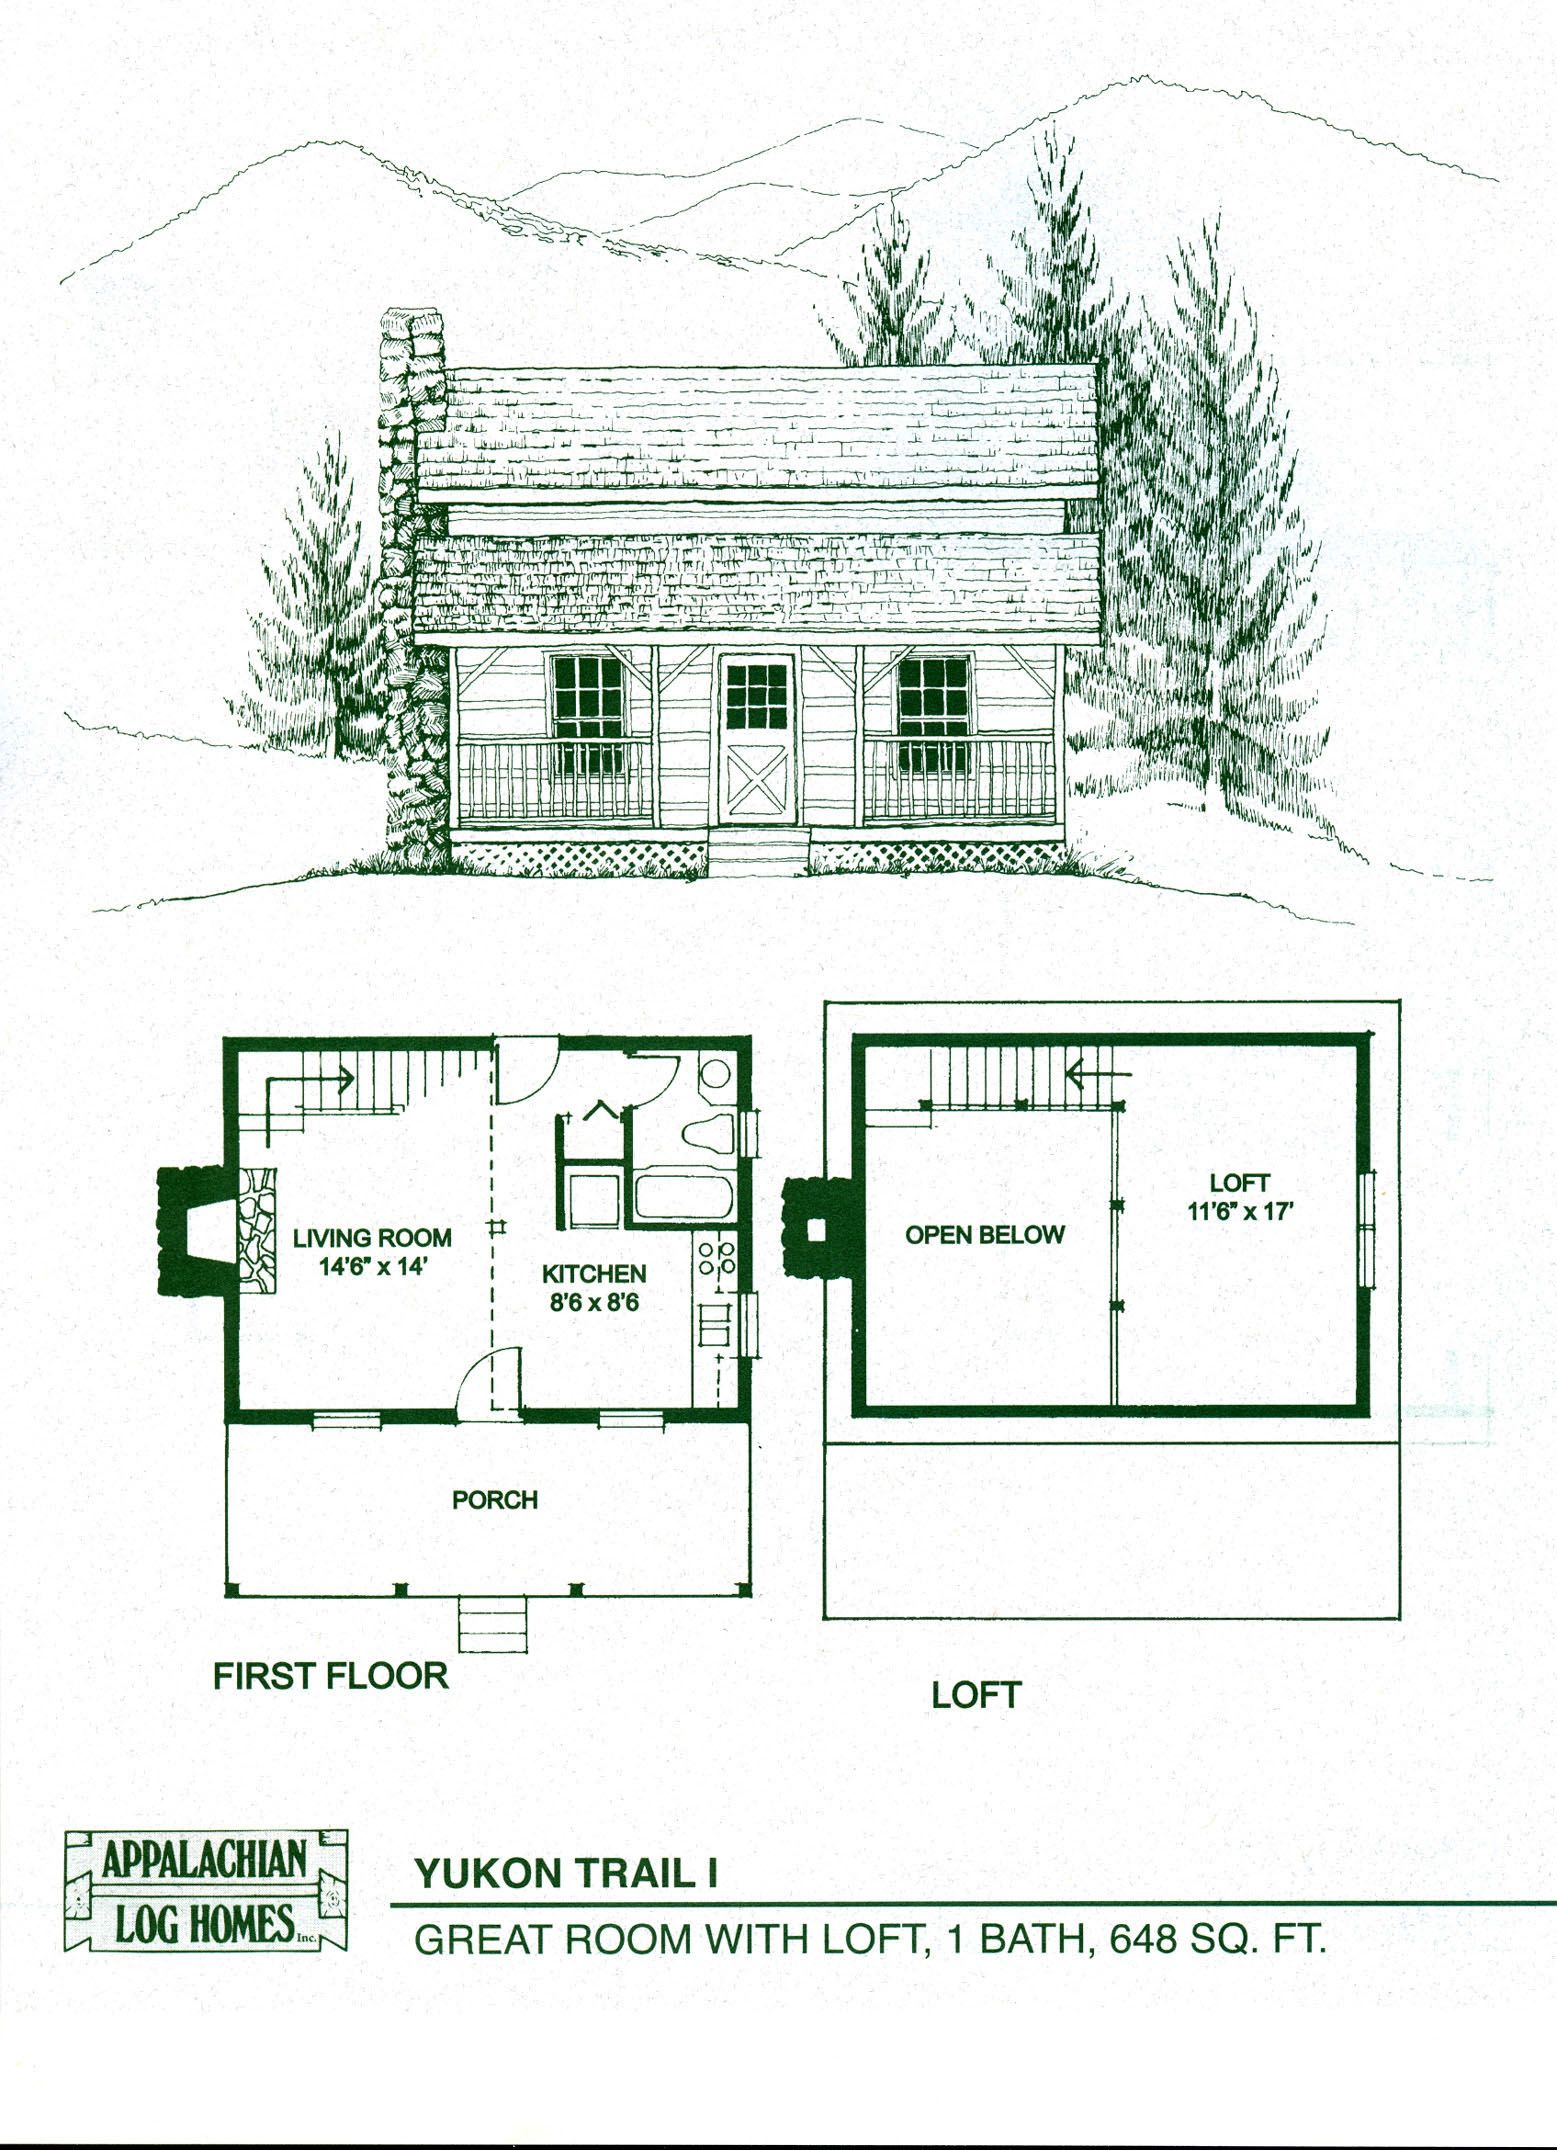 Log home floor plans log cabin kits appalachian log for Small cabin building plans